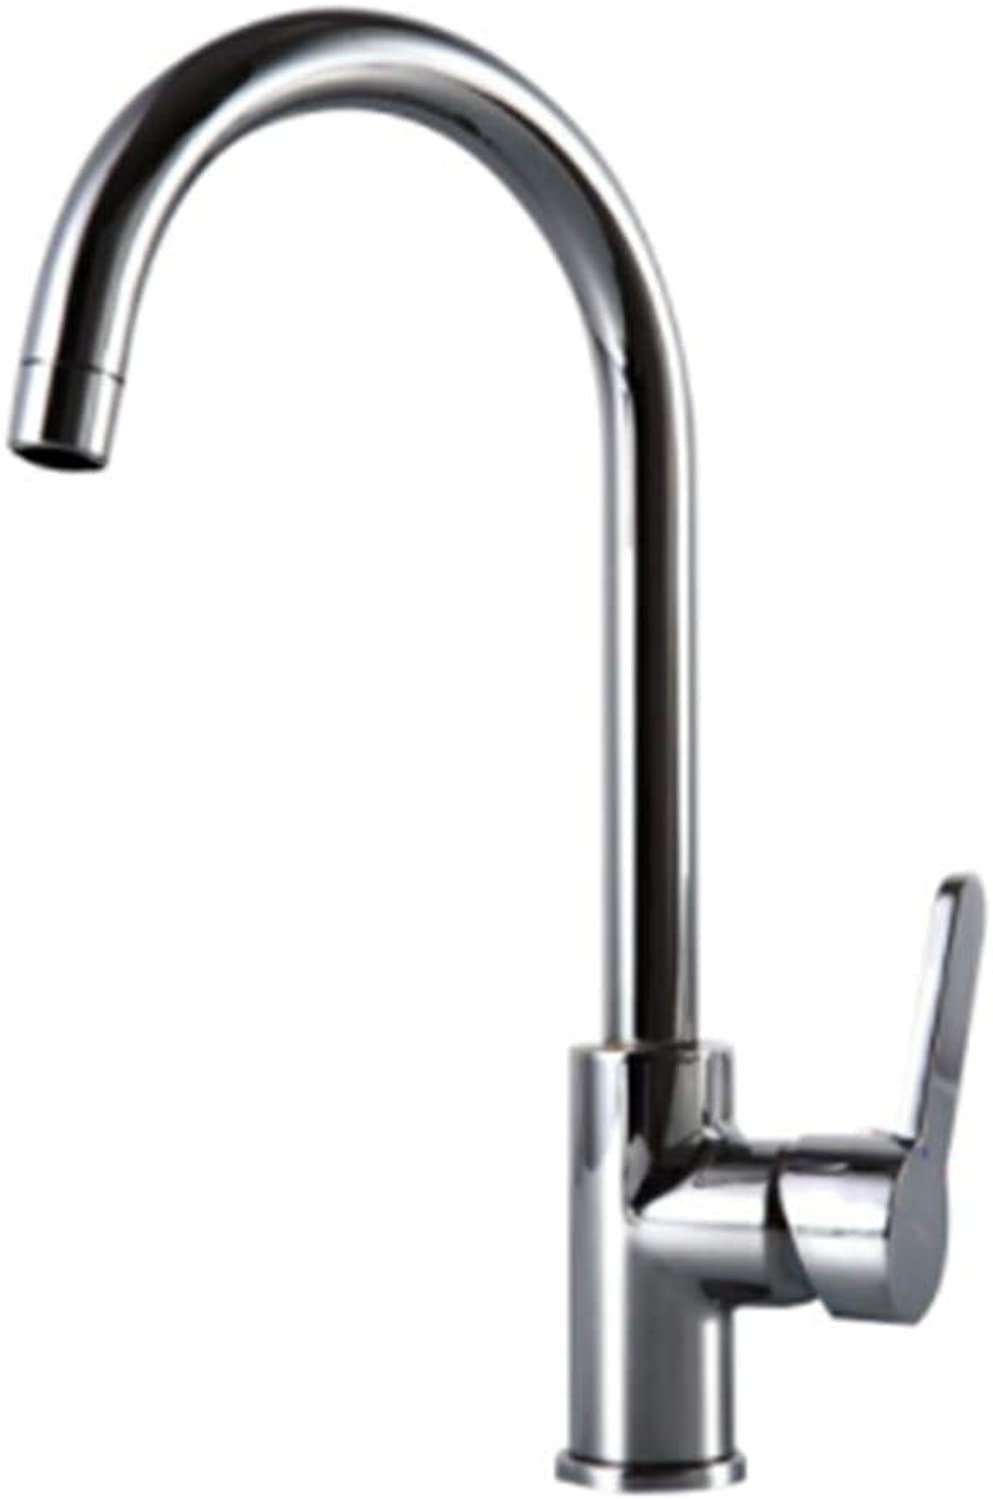 Kitchen Taps Faucet Modern Kitchen Sink Taps Stainless Steelkitchen Faucet Faucet Kitchen Kitchen Hot and Cold Water Faucet Can redate Washing Vegetable Basin Faucet.